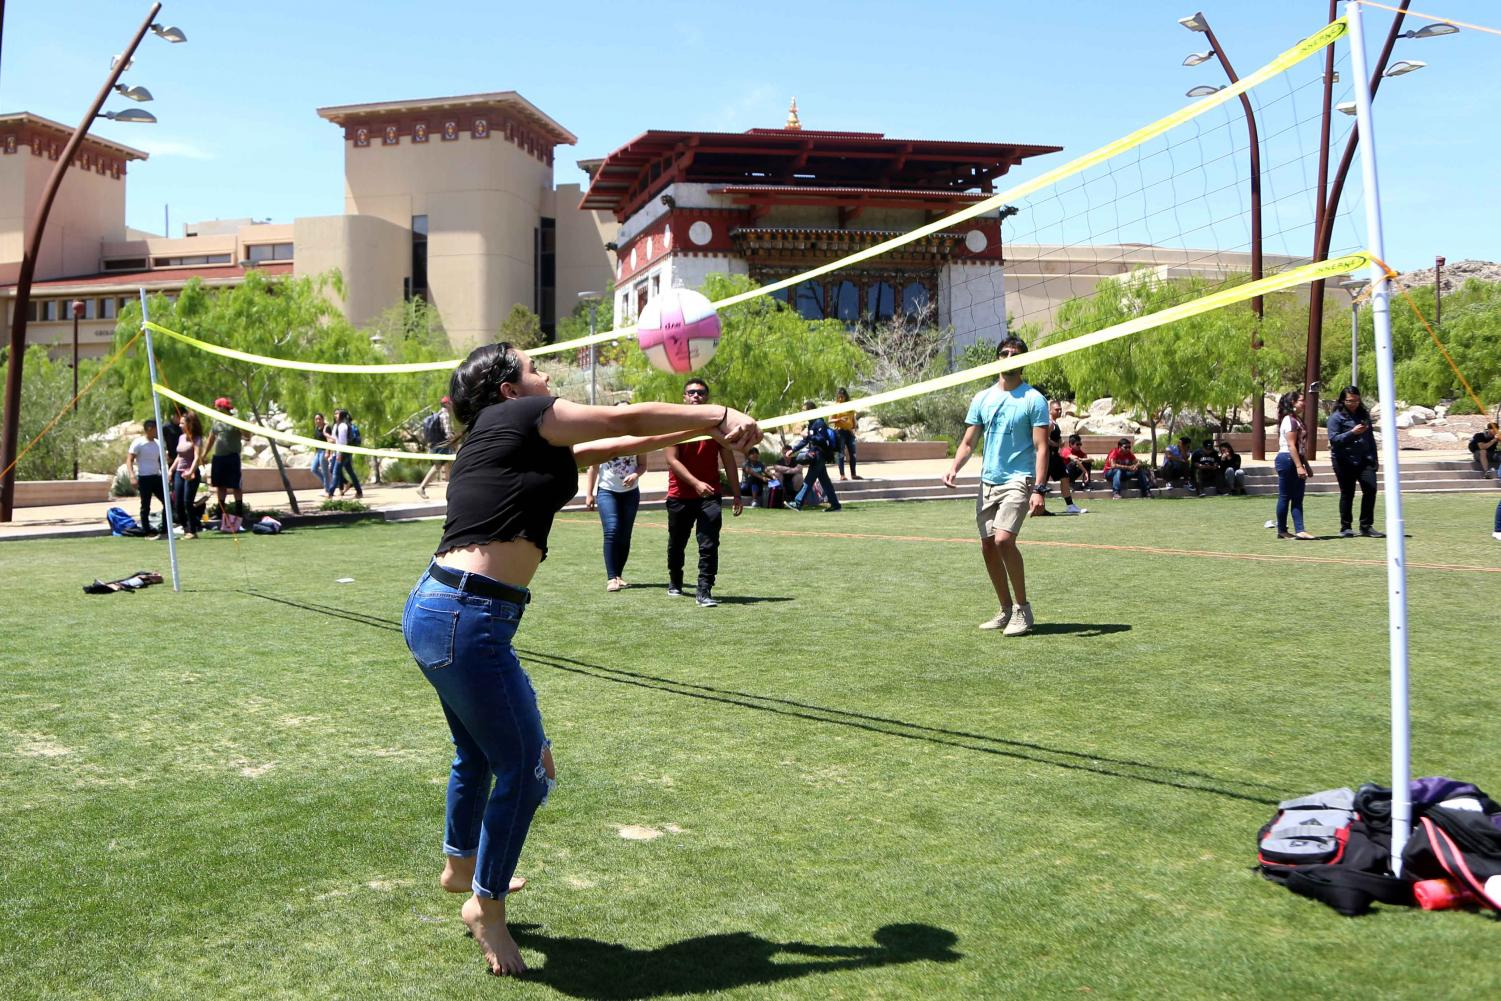 Students+play+volleyball+at+the+first+Miner+Fest++on+Wednesday%2C+April+18+at+Centennial+Plaza.+